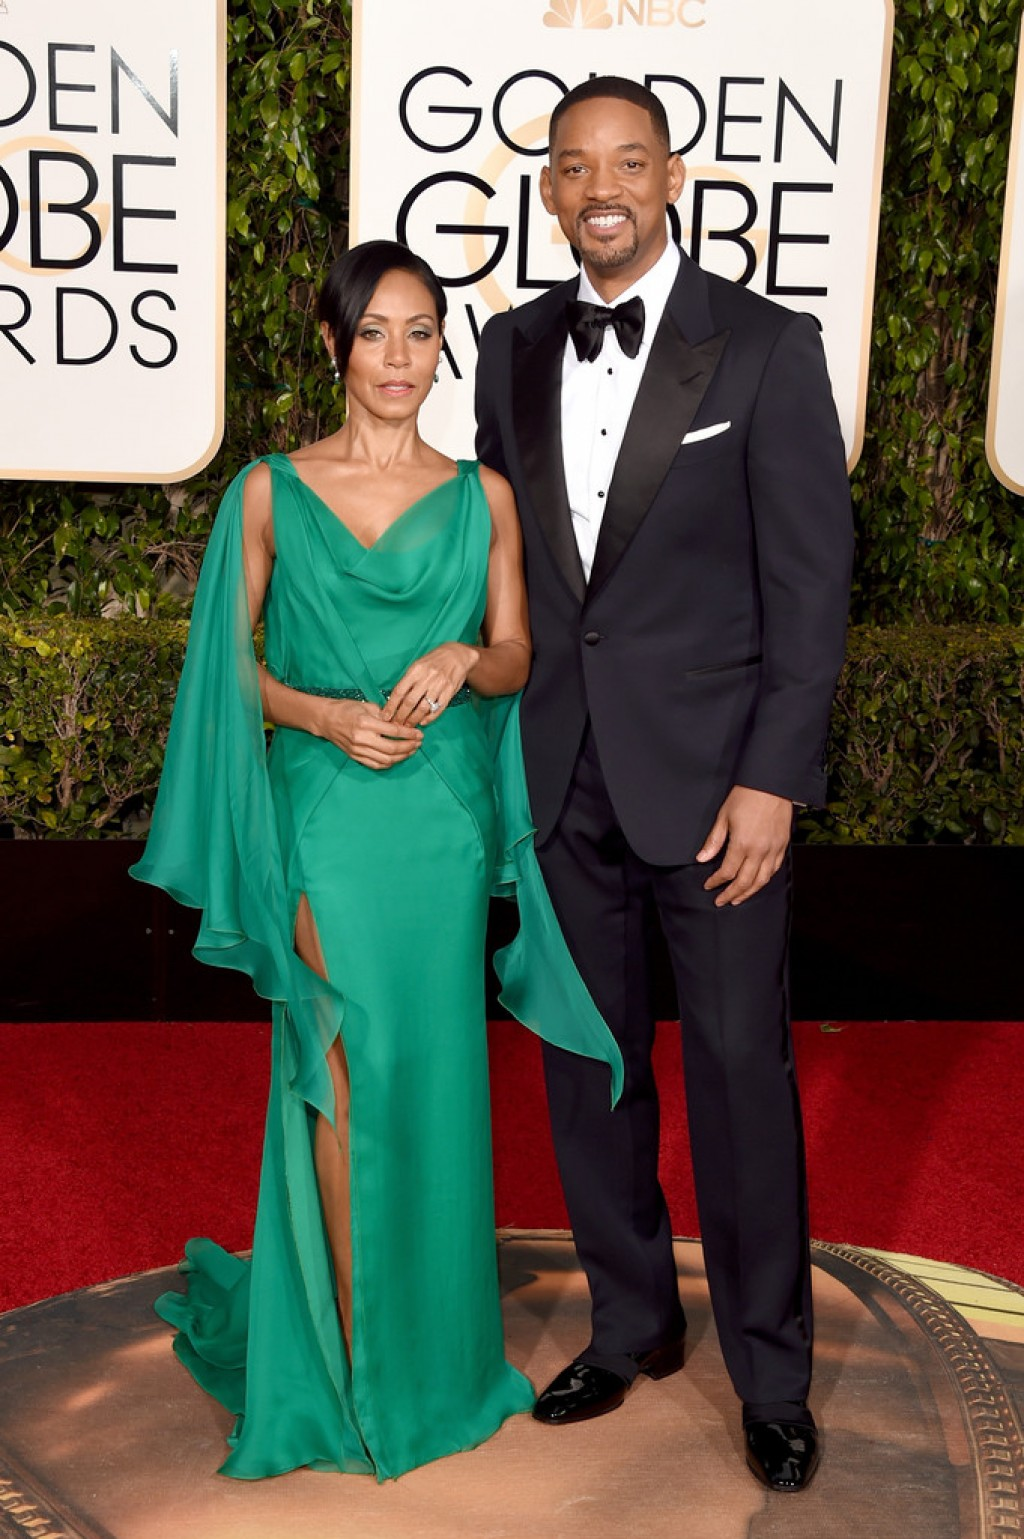 Jada-Pinkett-Smith-Will-Versace-2016-Golden-Globe-Awards-1024x1539